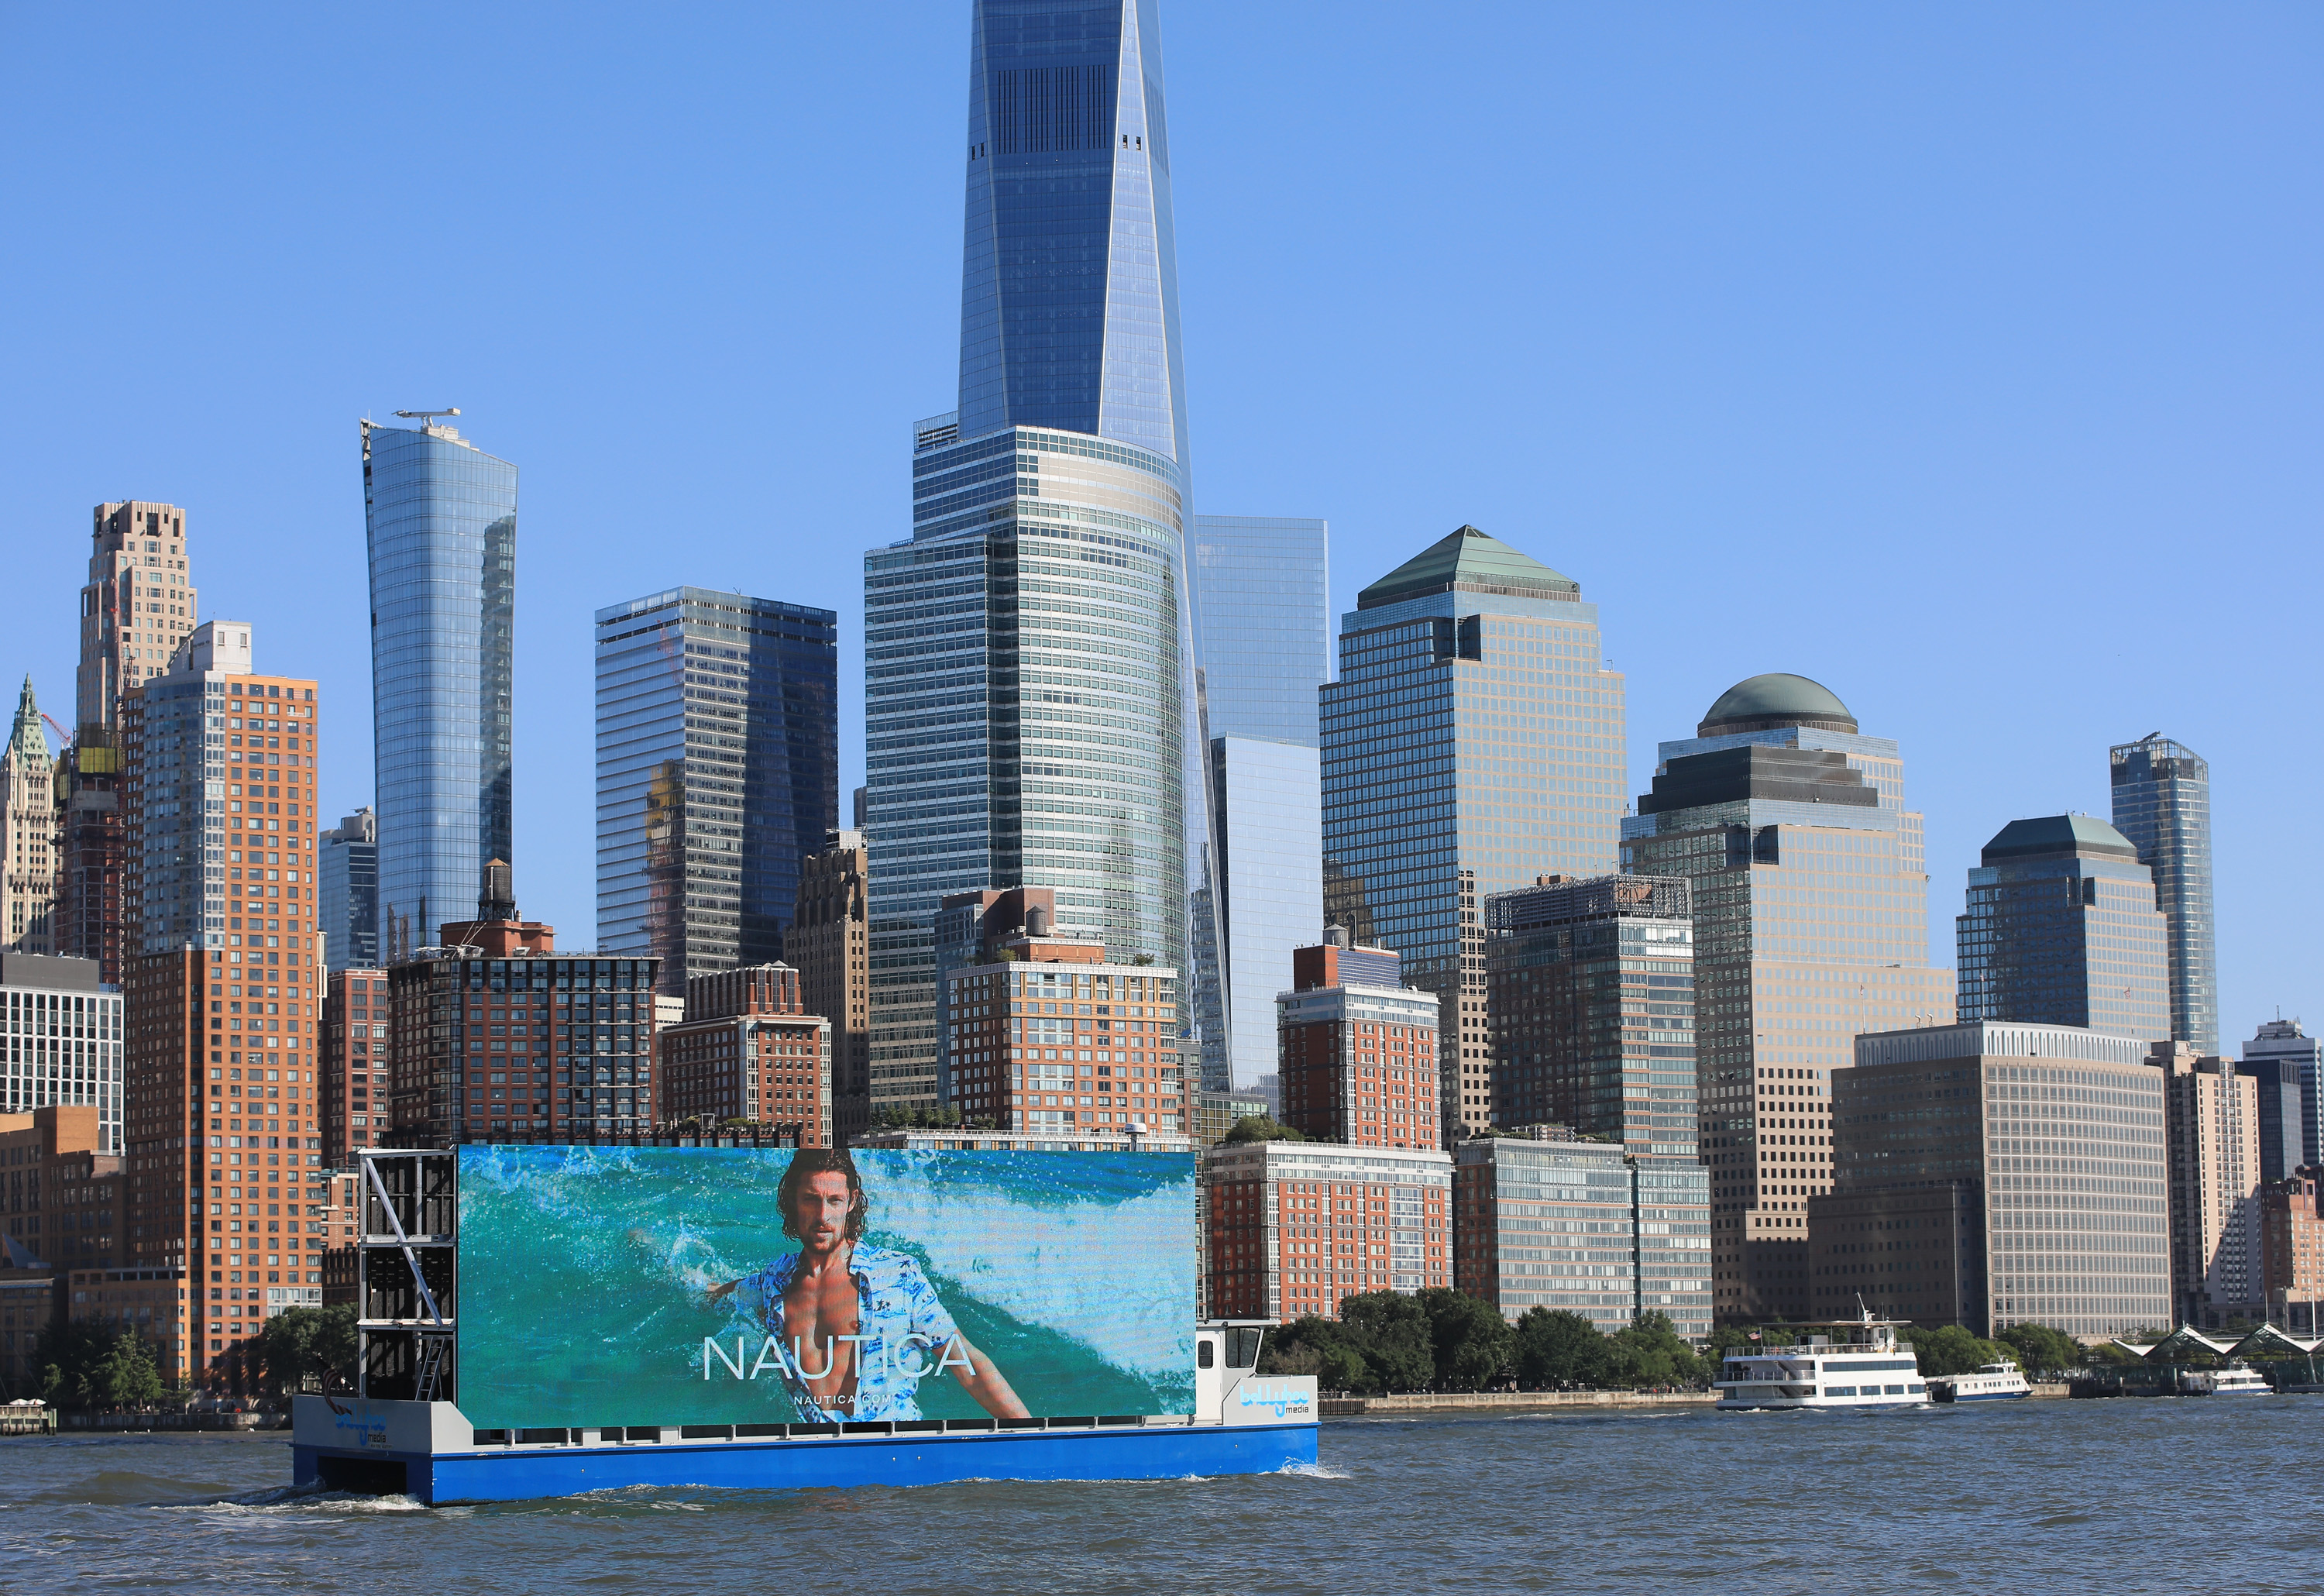 NYC declares victory over 'Times Square-style' digital floating billboards